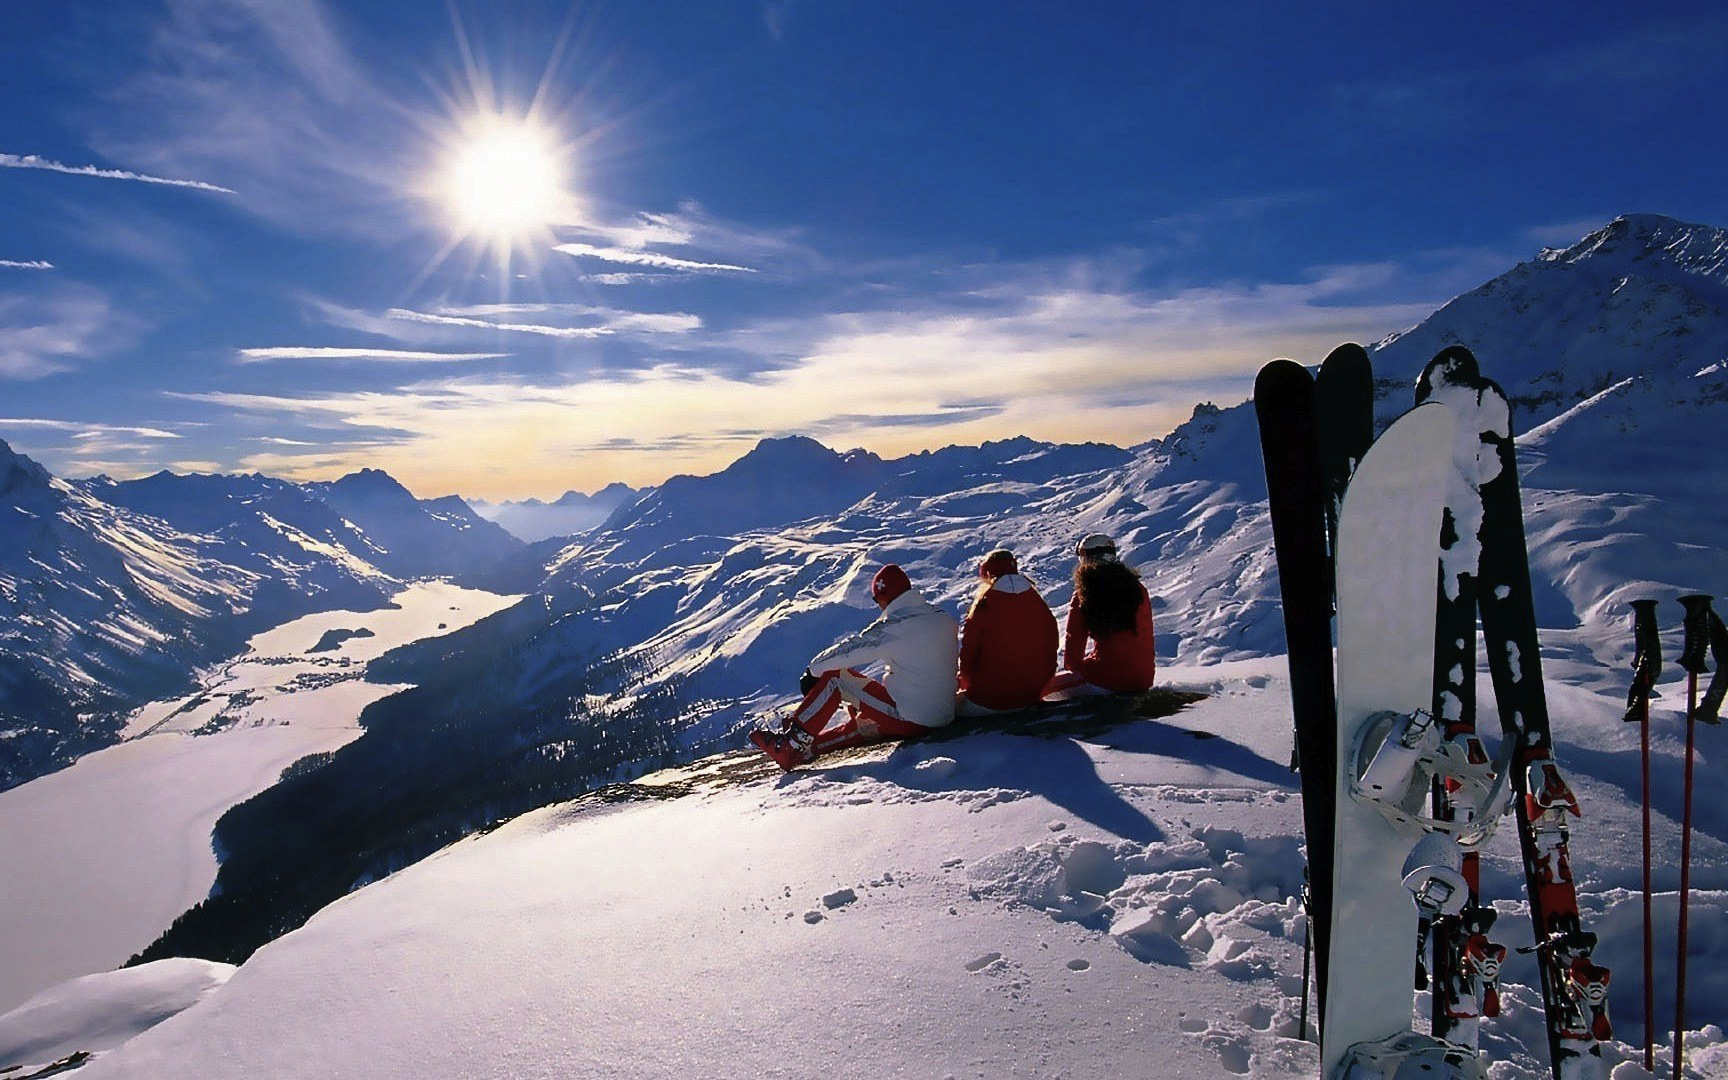 SNOW SPORTS INCENTIVES